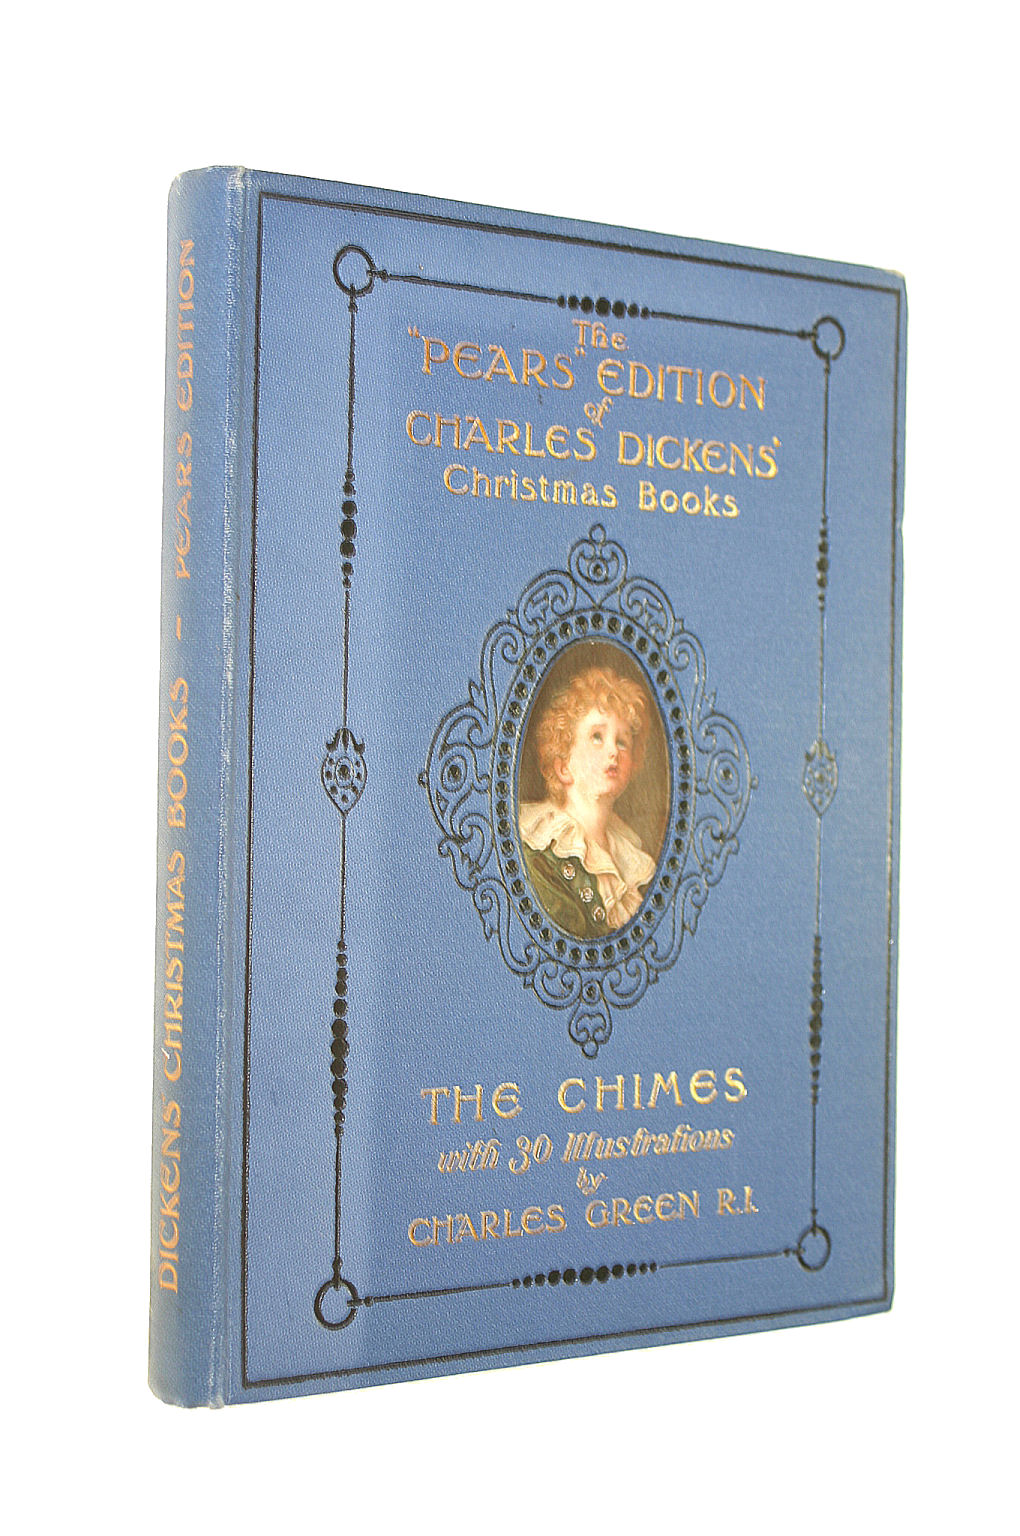 Image for The Pears Centenary Edition Of Charles Dickens Christmas Books The Chimes With 30 Illustrations By Charles Green